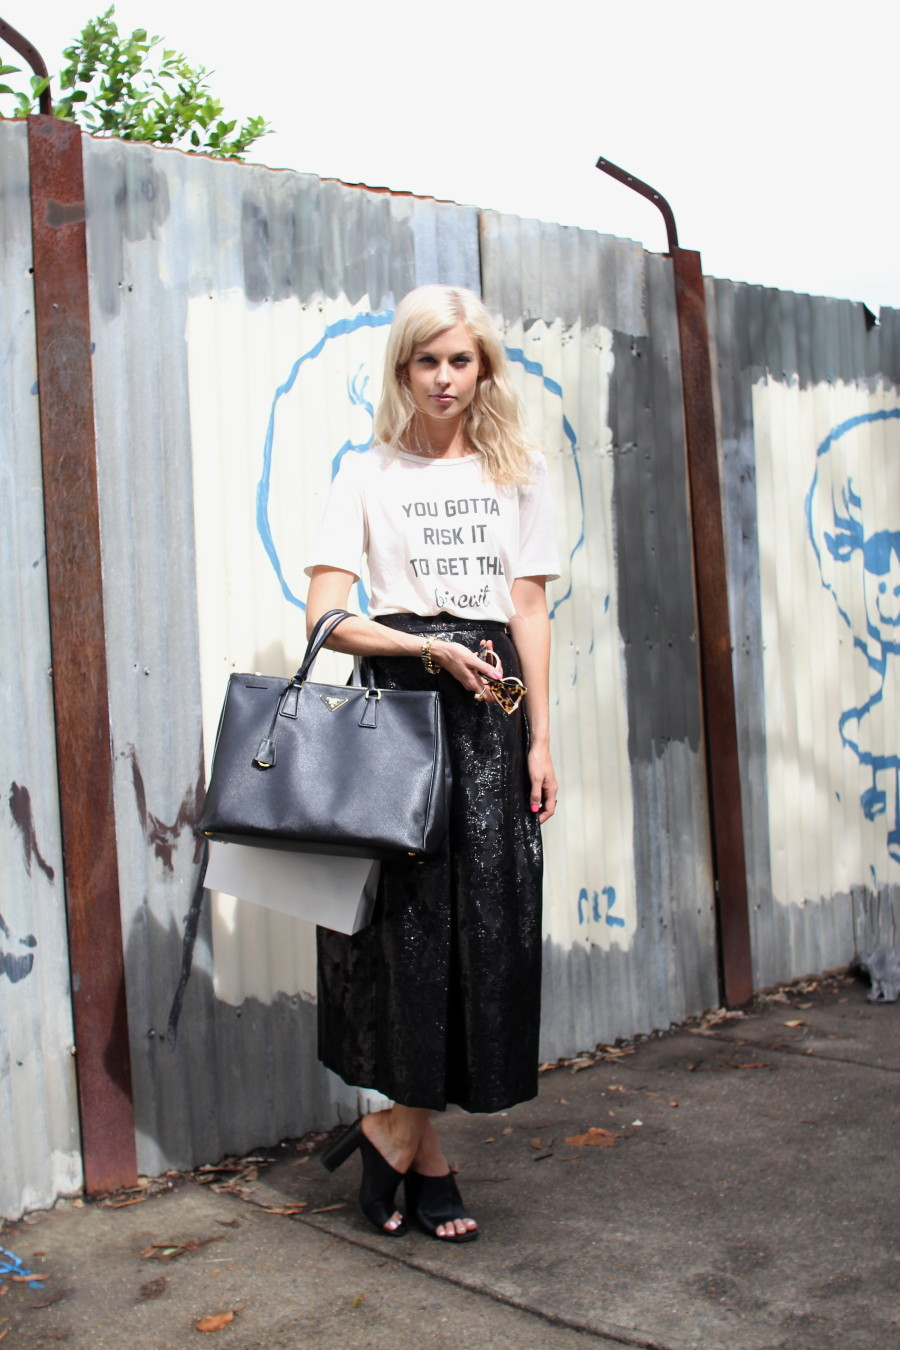 MBFWA natalie cantell model street style fashion week australia